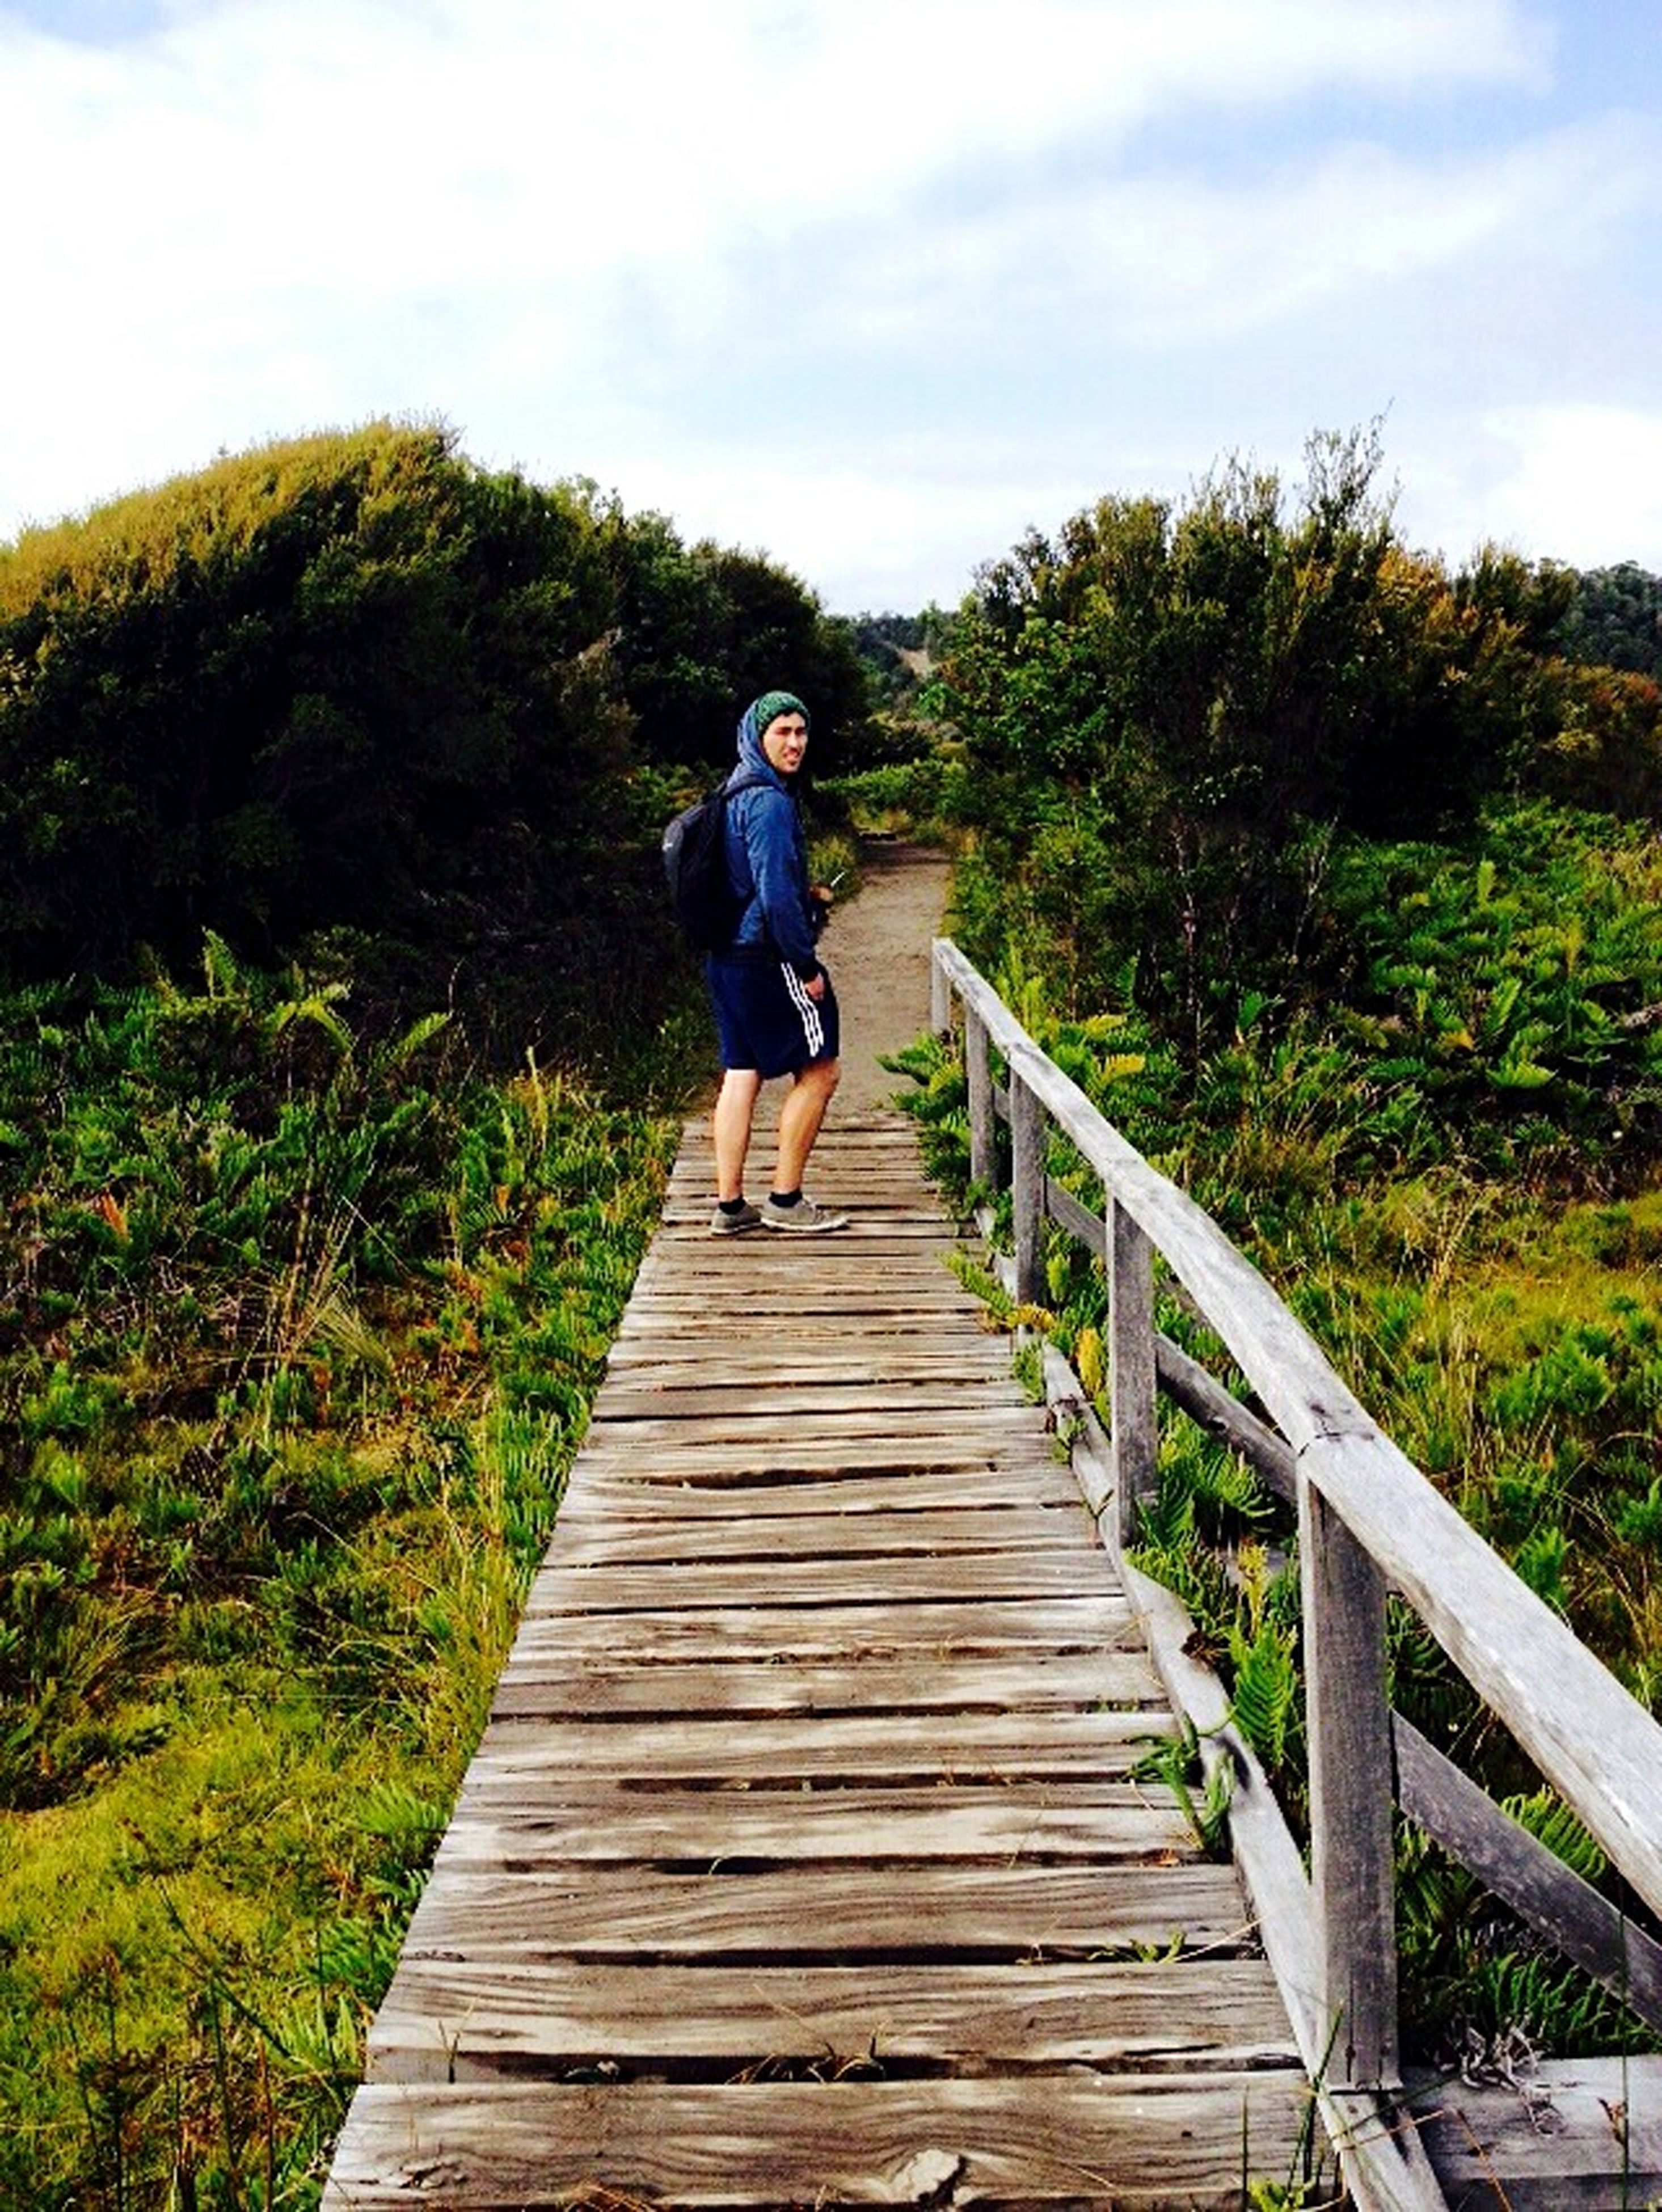 full length, the way forward, rear view, lifestyles, tree, sky, casual clothing, leisure activity, boardwalk, wood - material, railing, walking, grass, nature, tranquility, plant, tranquil scene, growth